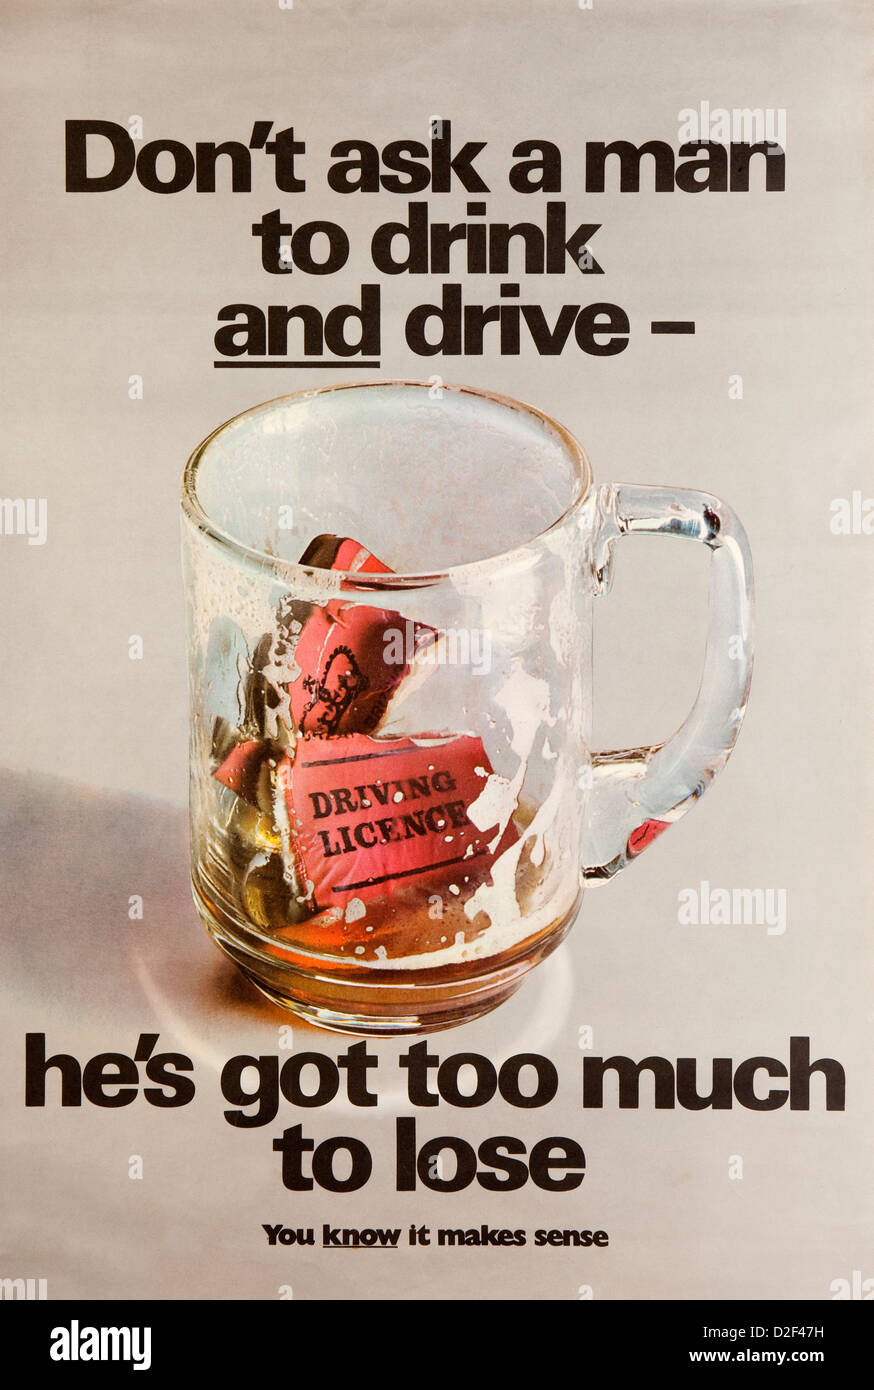 Road Safety, 1960s, ROSPA anti drunk driving poster, dont ask a man to drink and drive Stock Photo